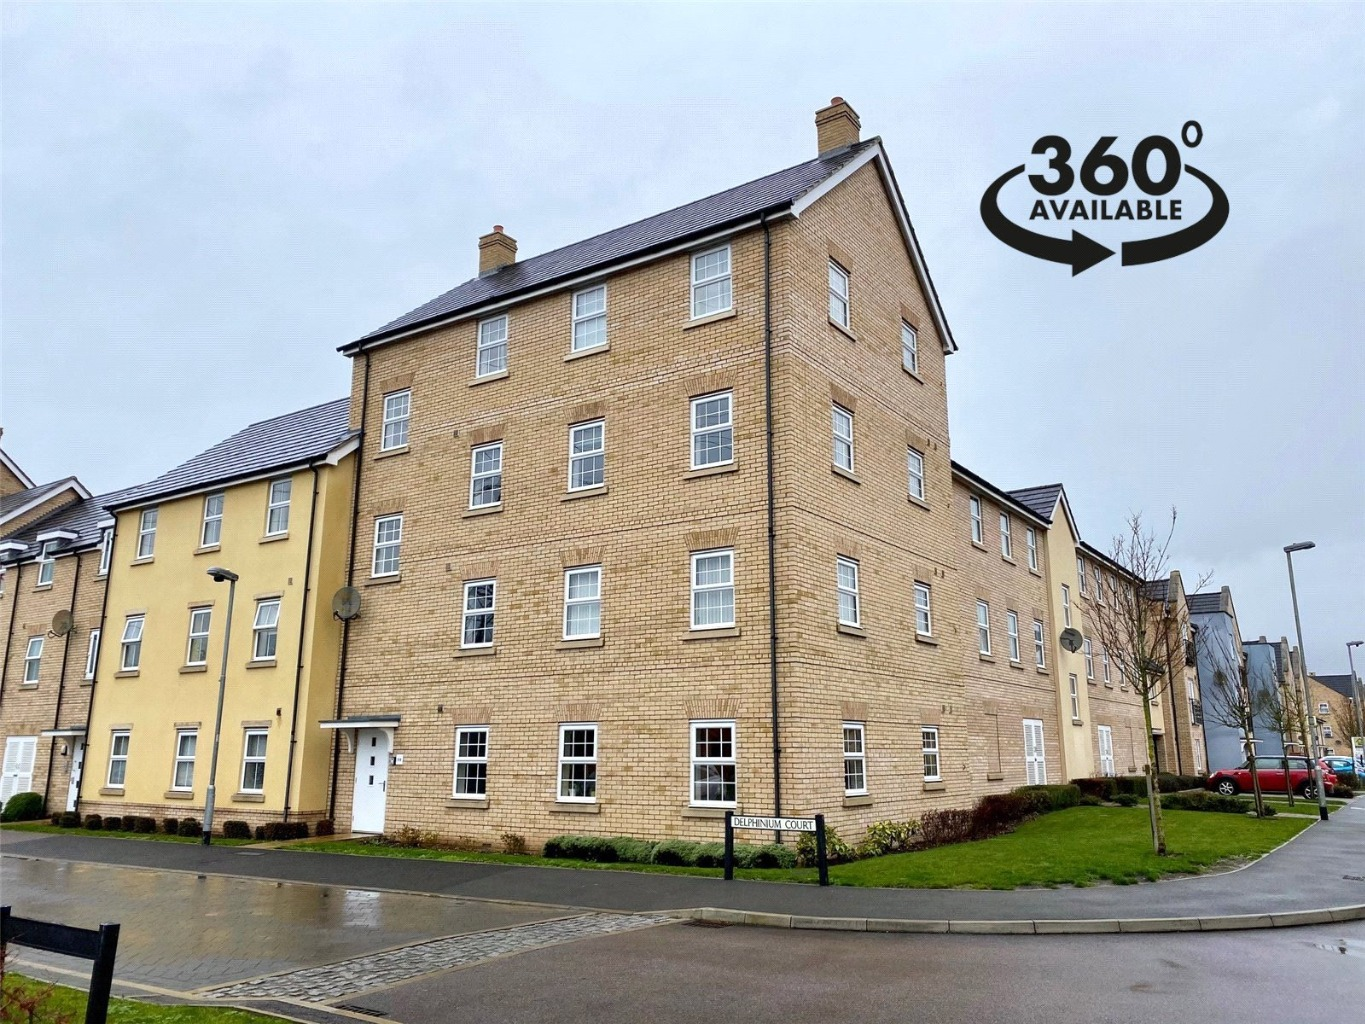 2 bed apartment for sale in Delphinium Court, St. Neots, PE19